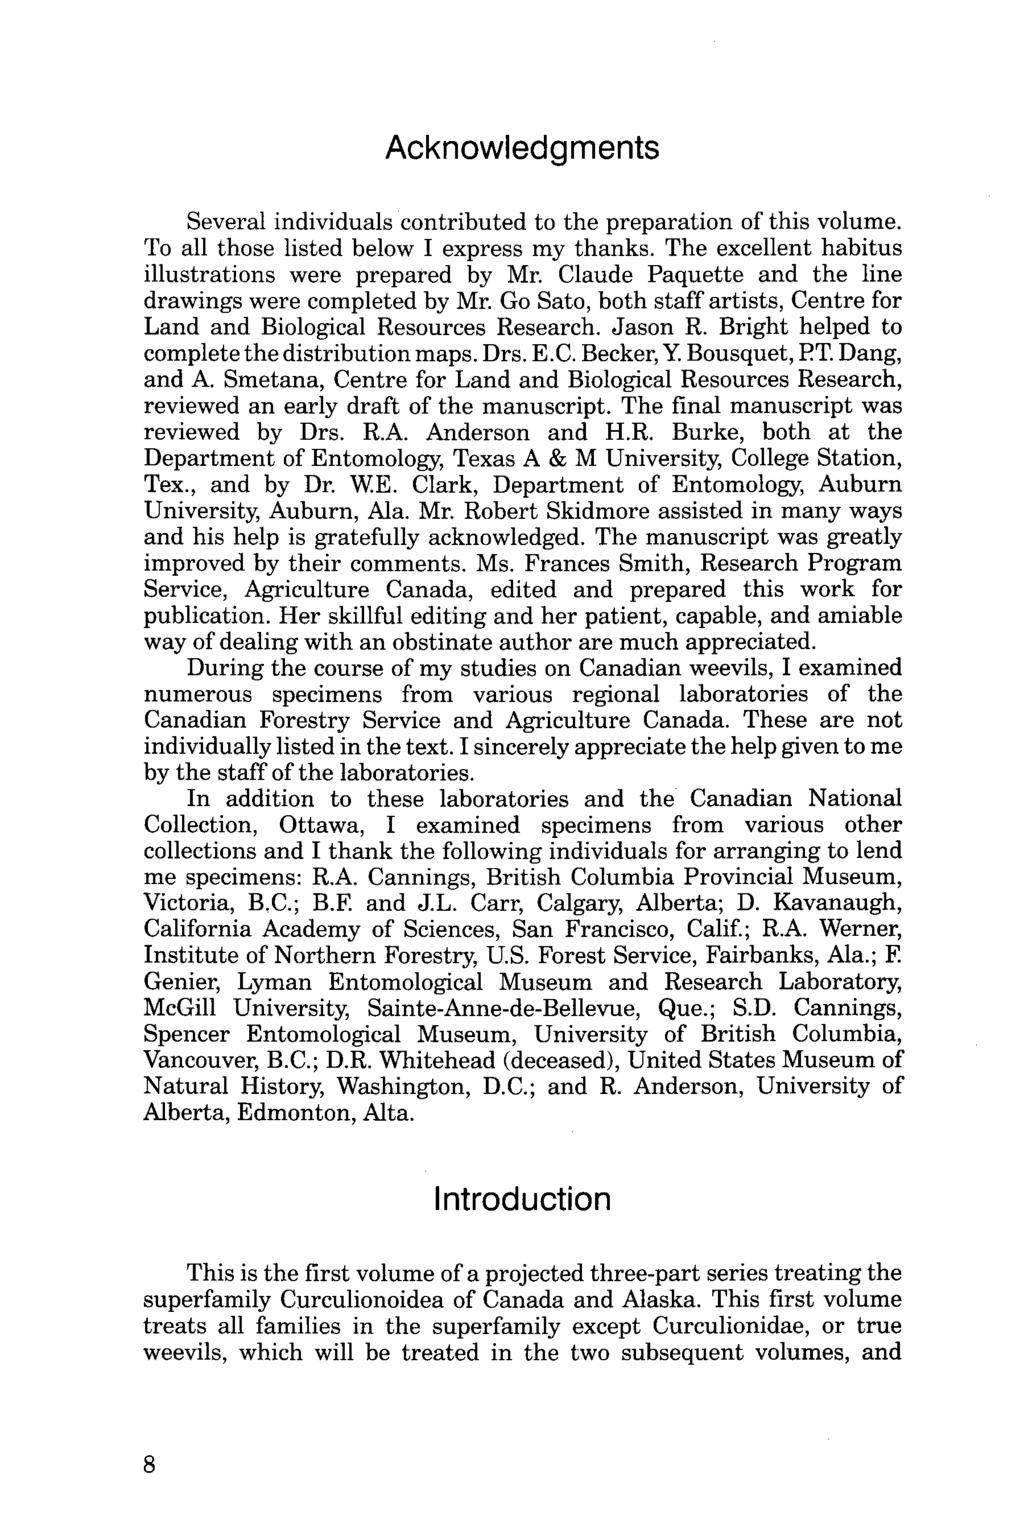 Acknowledgments Several individuals contributed to the preparation of this volume. To all those listed below I express my thanks. The excellent habitus illustrations were prepared by Mr.